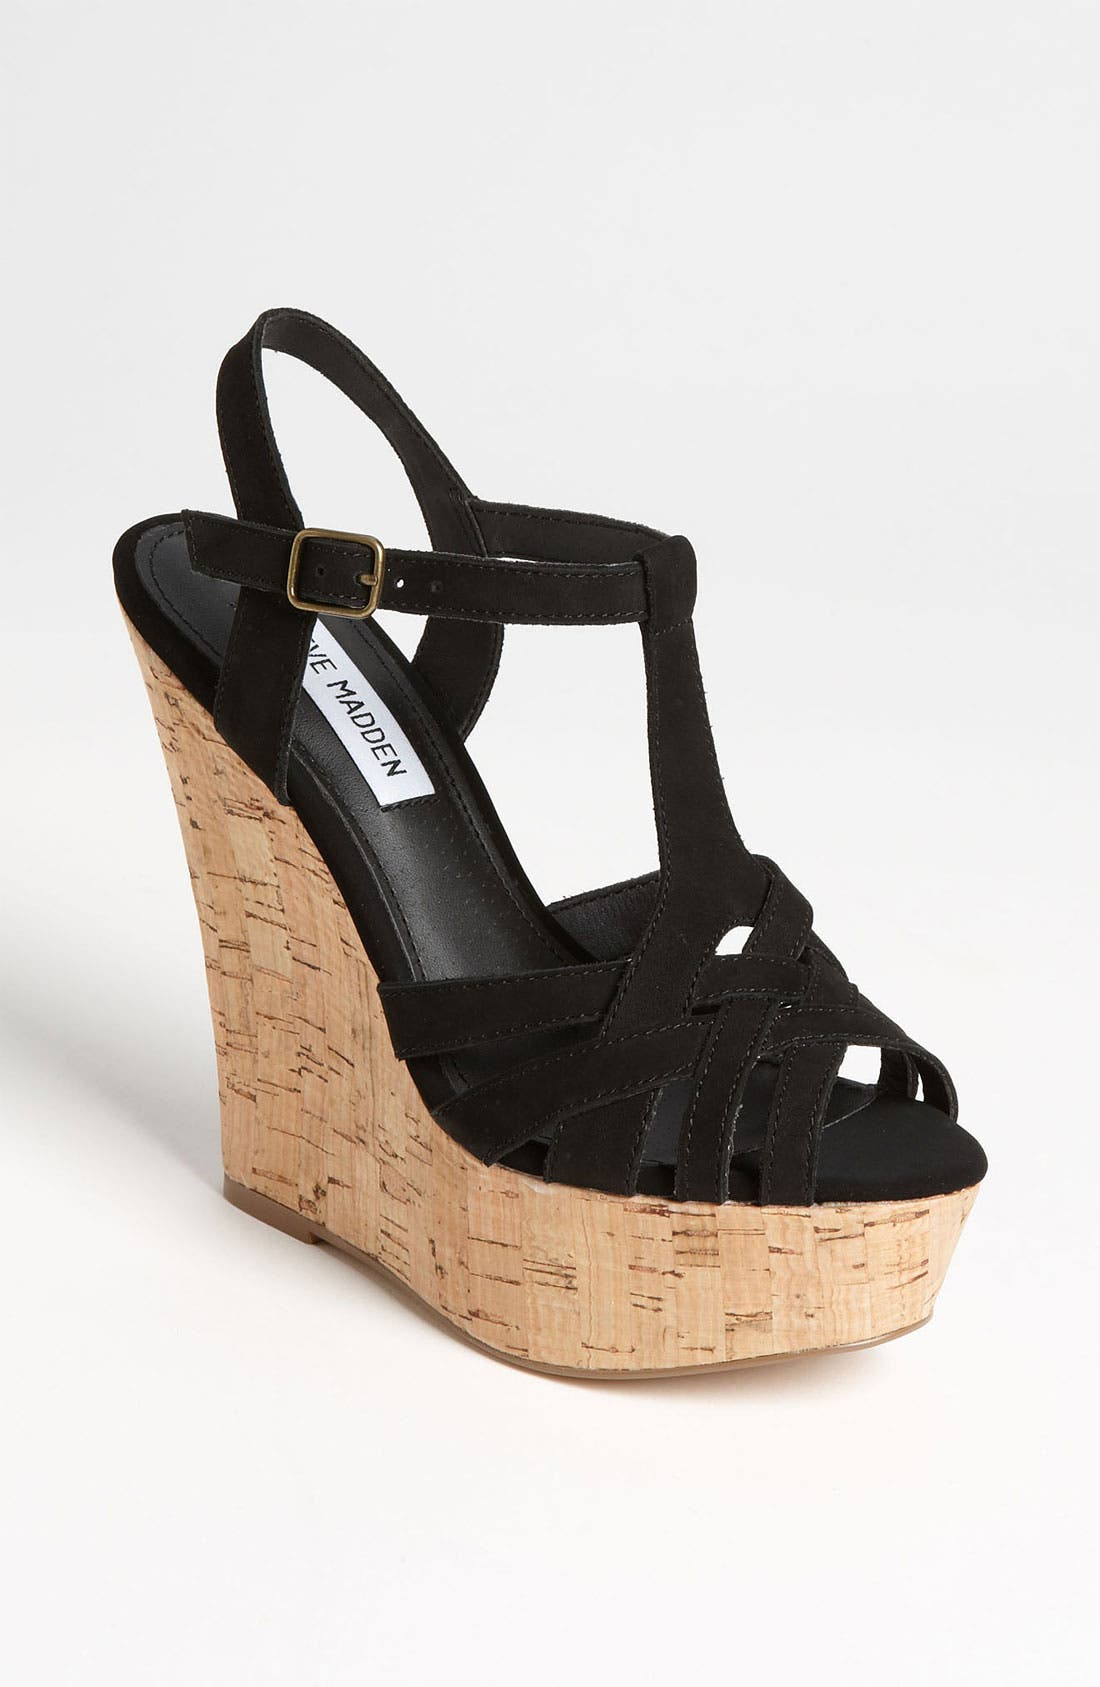 Alternate Image 1 Selected - Steve Madden 'Wildness' Sandal